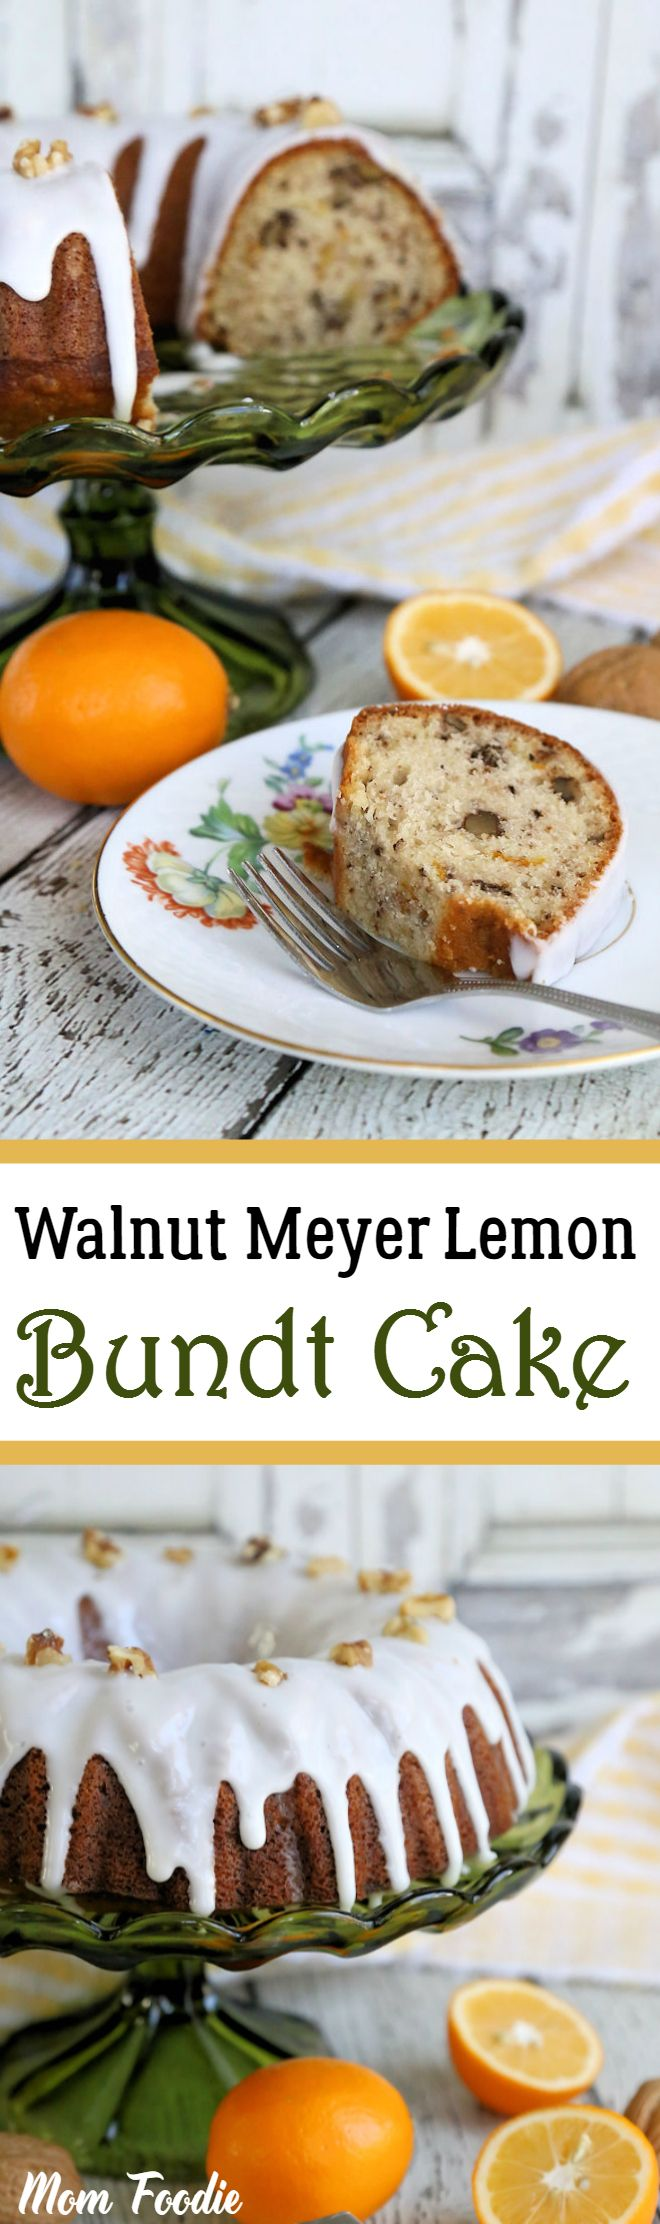 Walnut-Meyer Lemon Bundt Cake is a rich and tangy bright spot on any holiday table. #finlandiabutter #ad